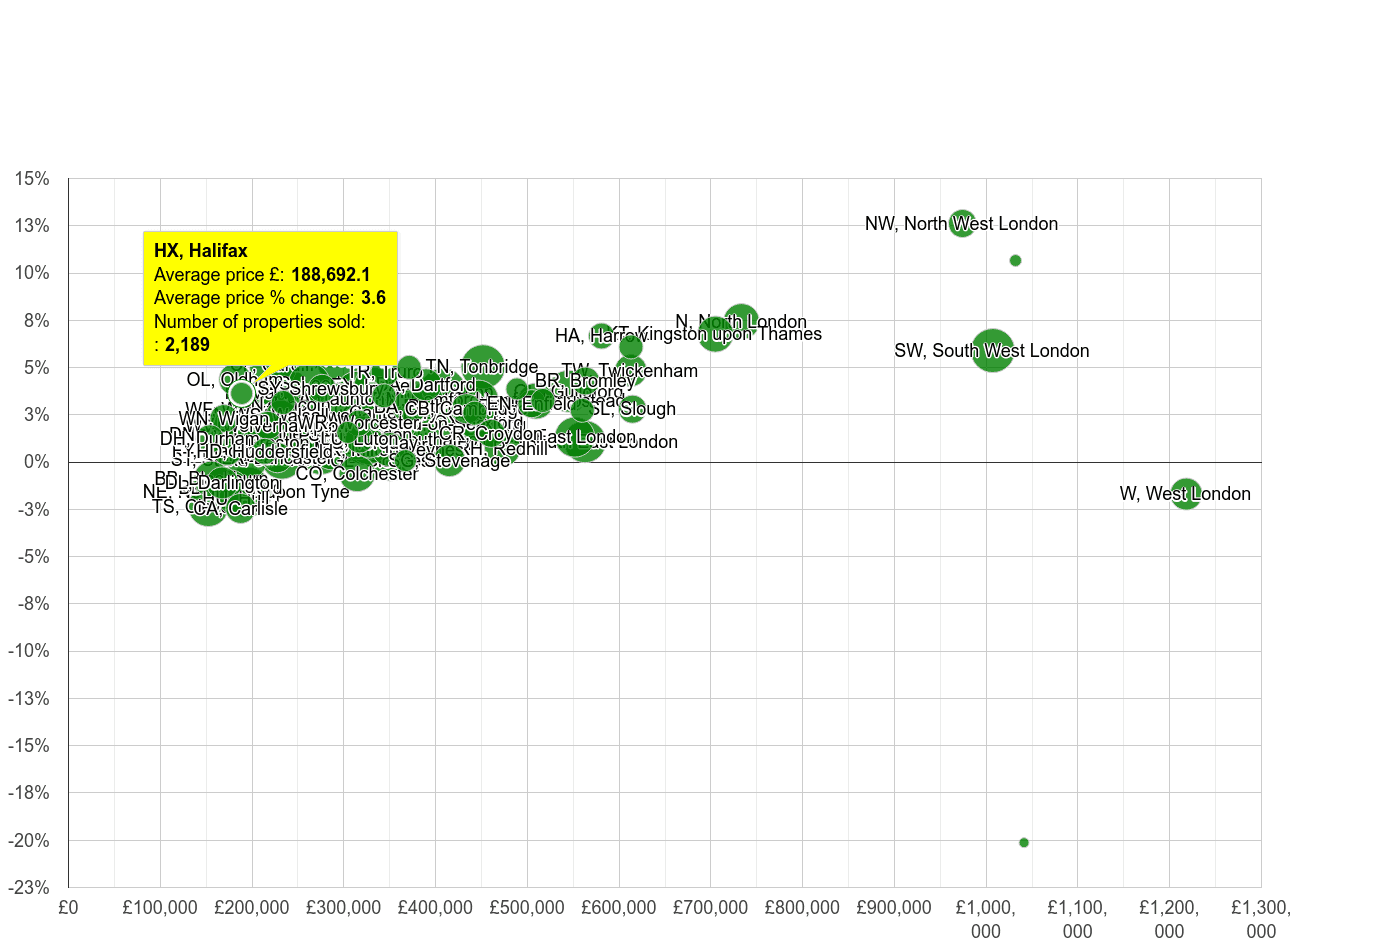 Halifax house prices compared to other areas